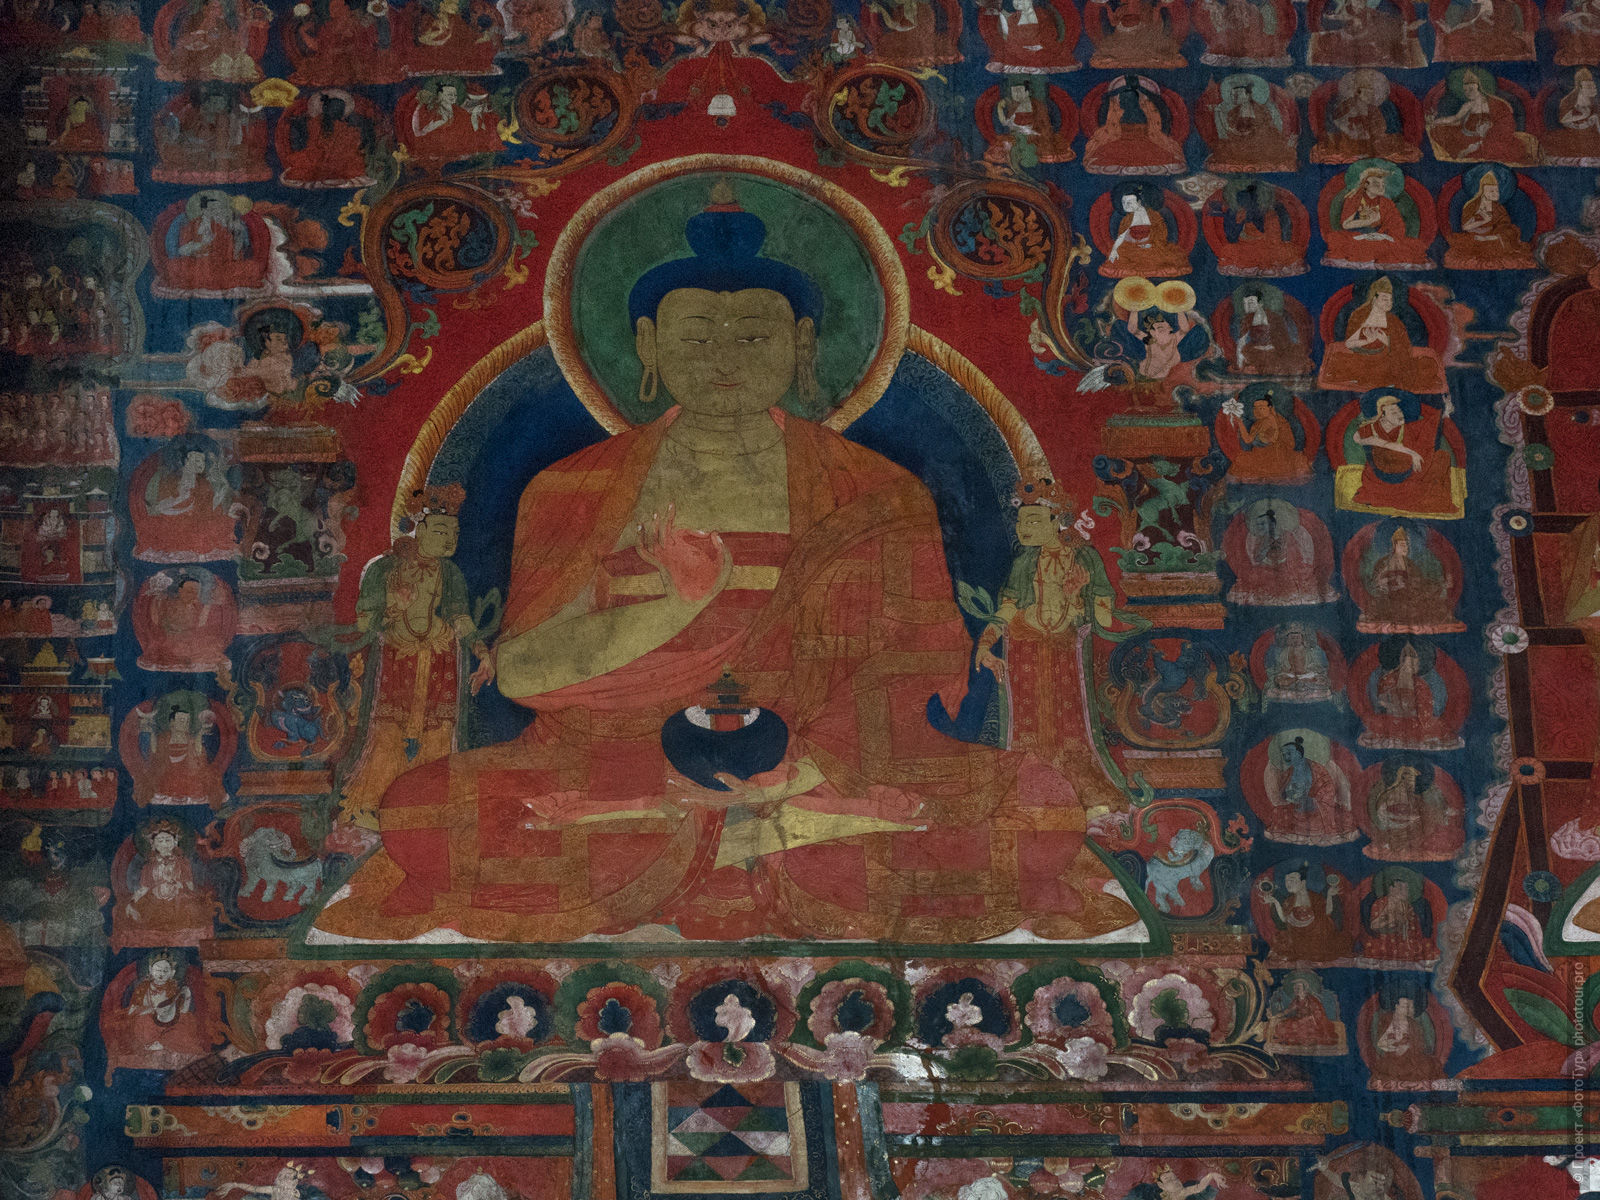 Ancient paintings in the Buddhist monastery of Basgo, Ladakh women's tour, August 31 - September 14, 2019.